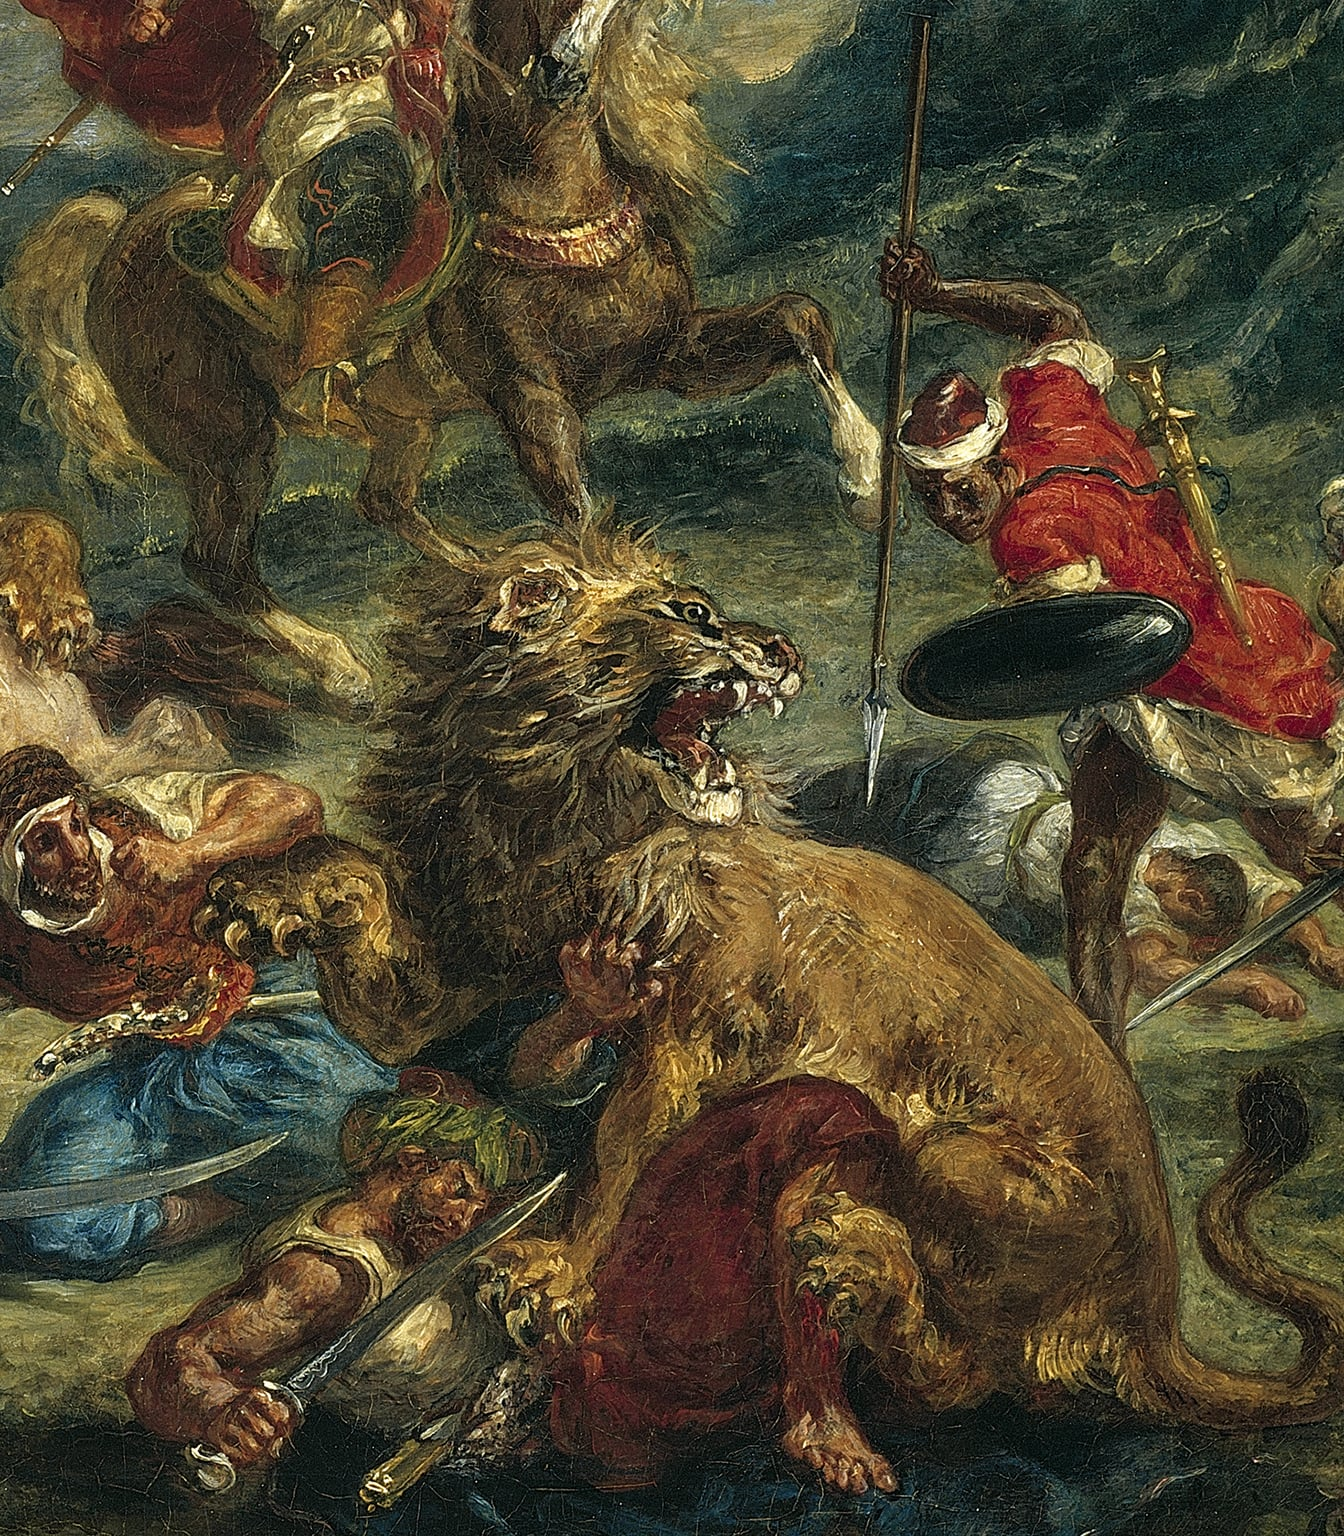 Delacroix and the Rise of Modern Art, National Gallery, 17 February – 22 May - Eugène Delacroix, Lion Hunt (detail), 1861 © The Art Institute of Chicago, Illinois